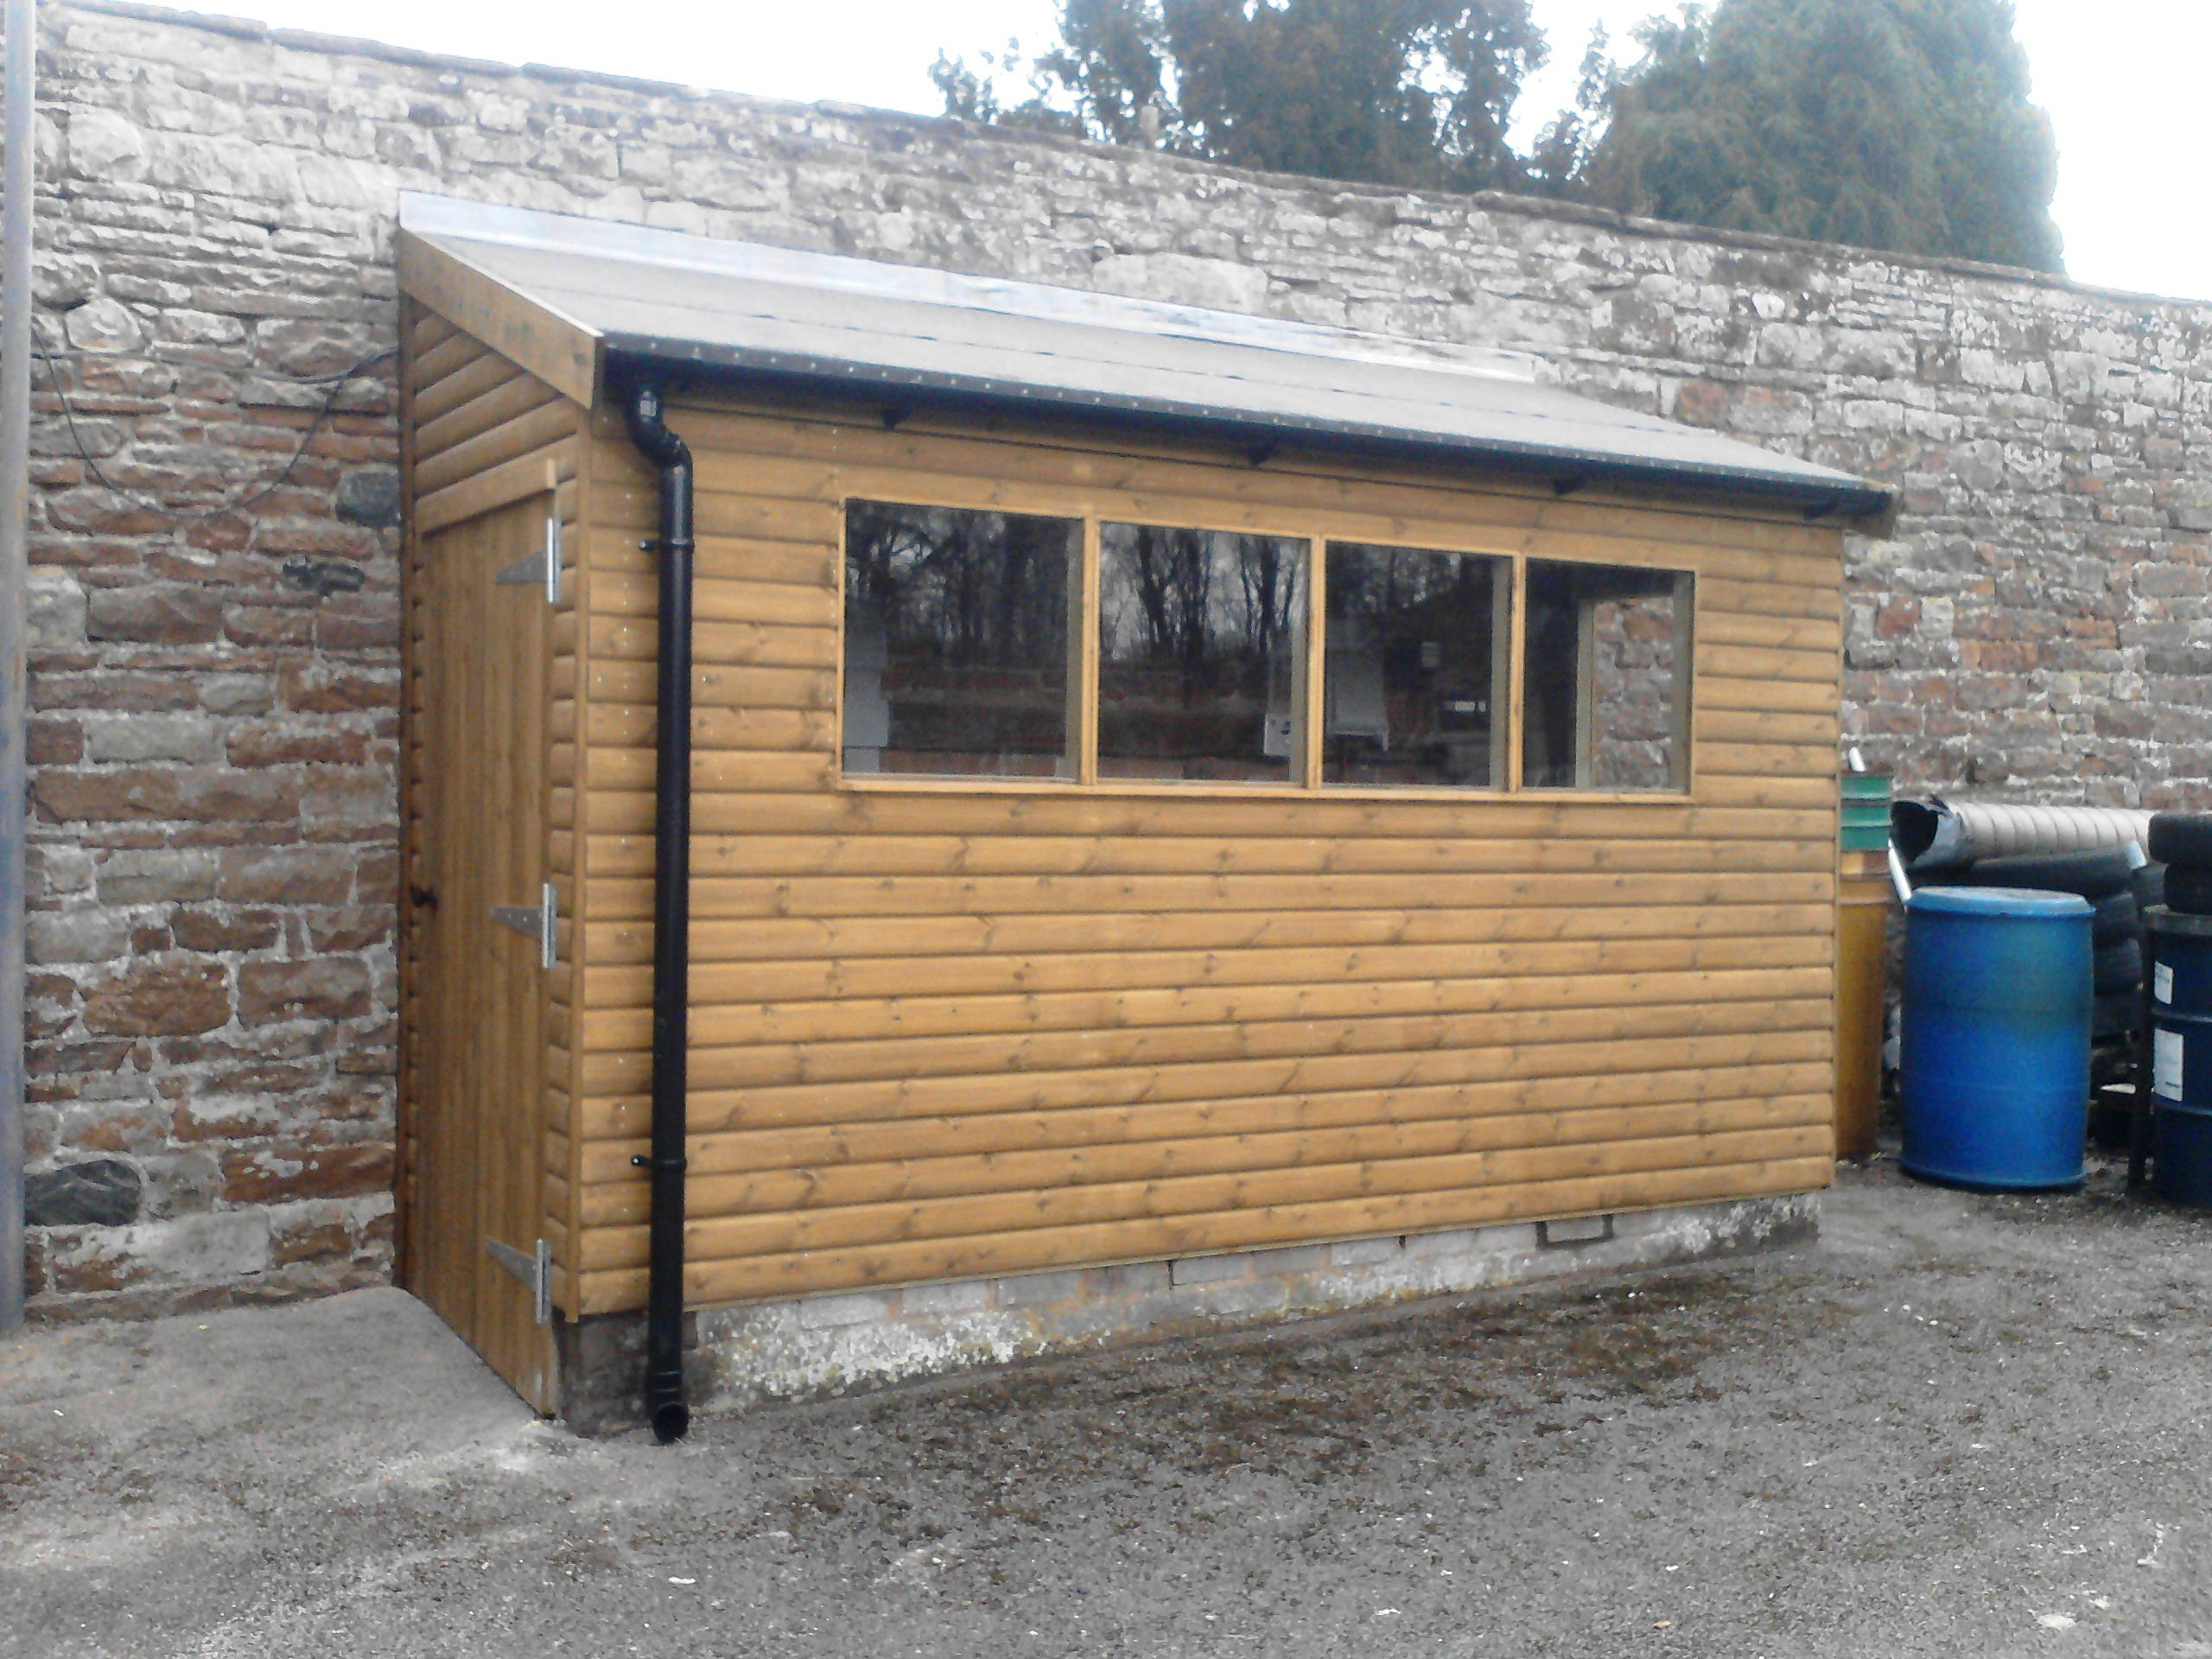 Morton garden buildings ltd cumbria gazebos garden offices greehouses garages - Garden sheds with lean to ...